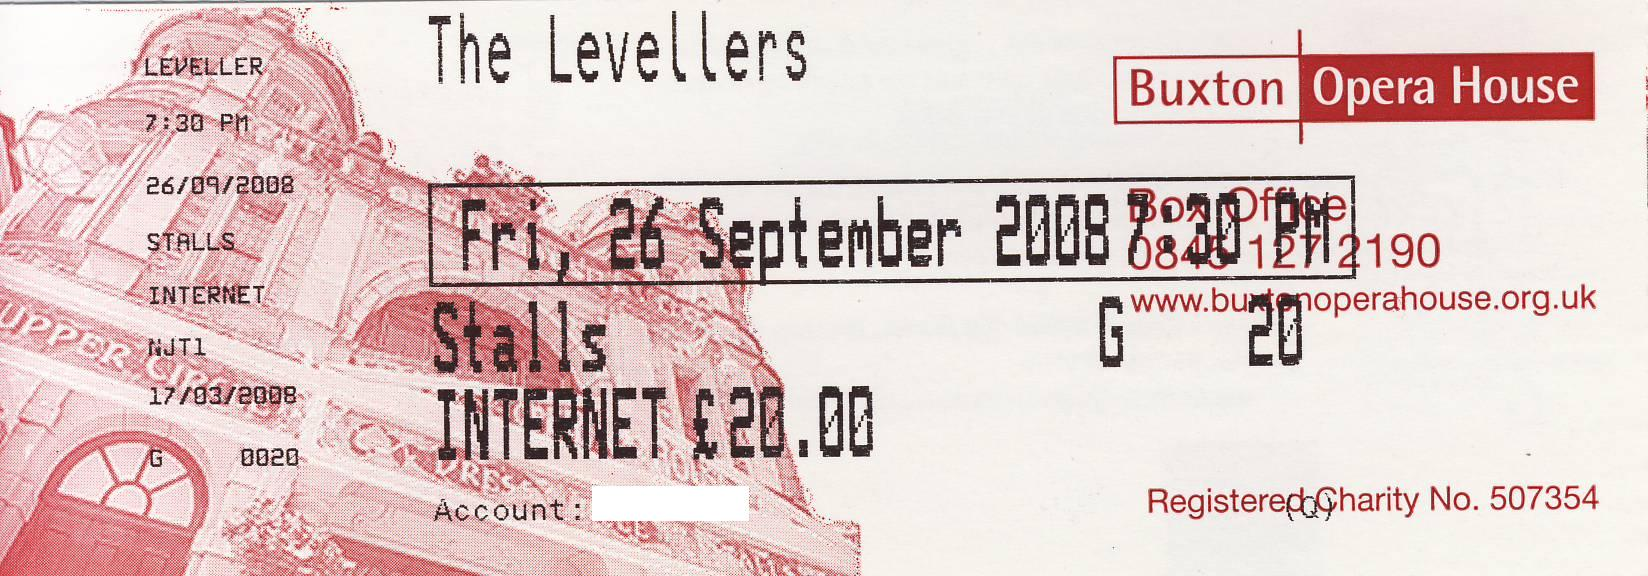 26 September 2008: Levellers - Opera House, Buxton, England, UK